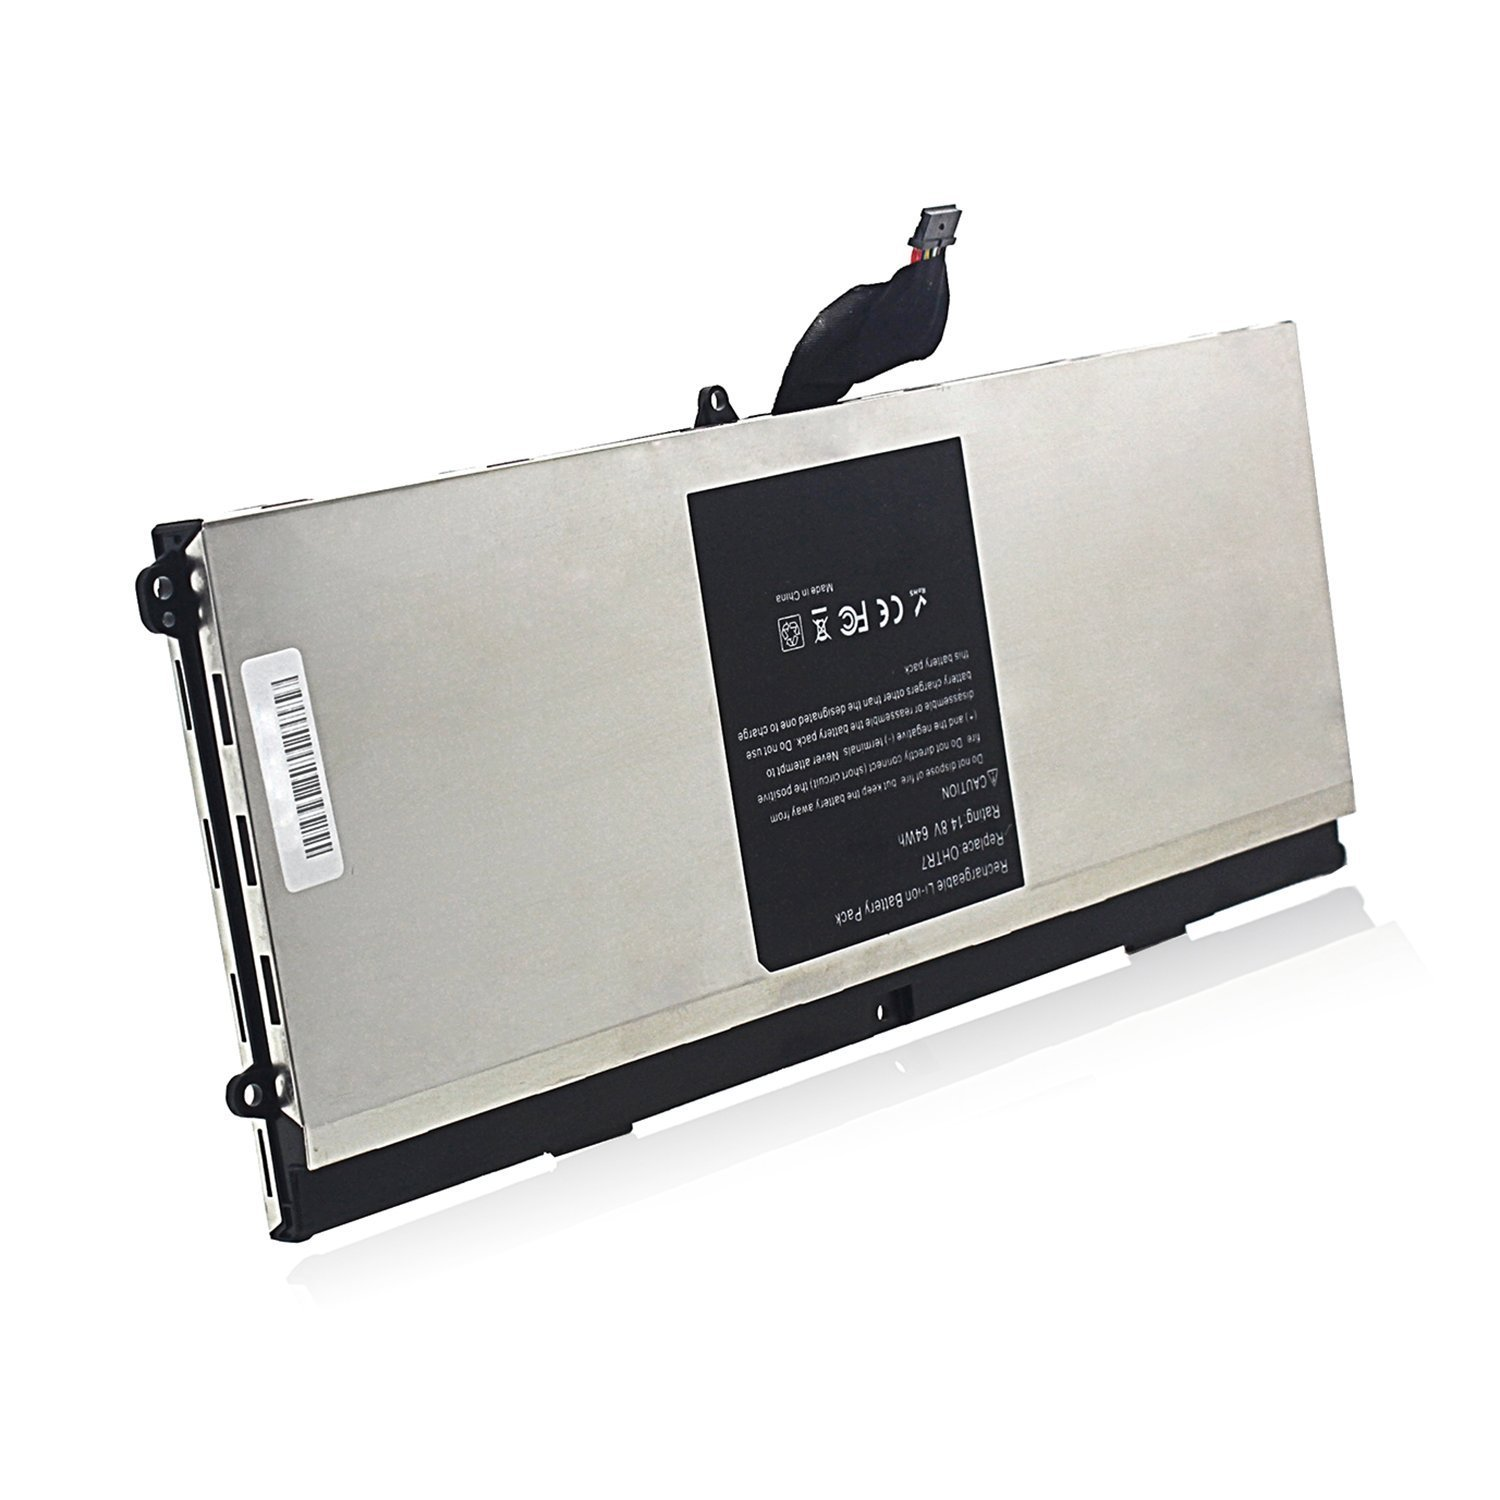 Cheap Dell Xps 15z Laptop Find Deals On Line At Battery Charger Wiring Diagram Get Quotations Addwr New For L511zcompatible P N0htr7